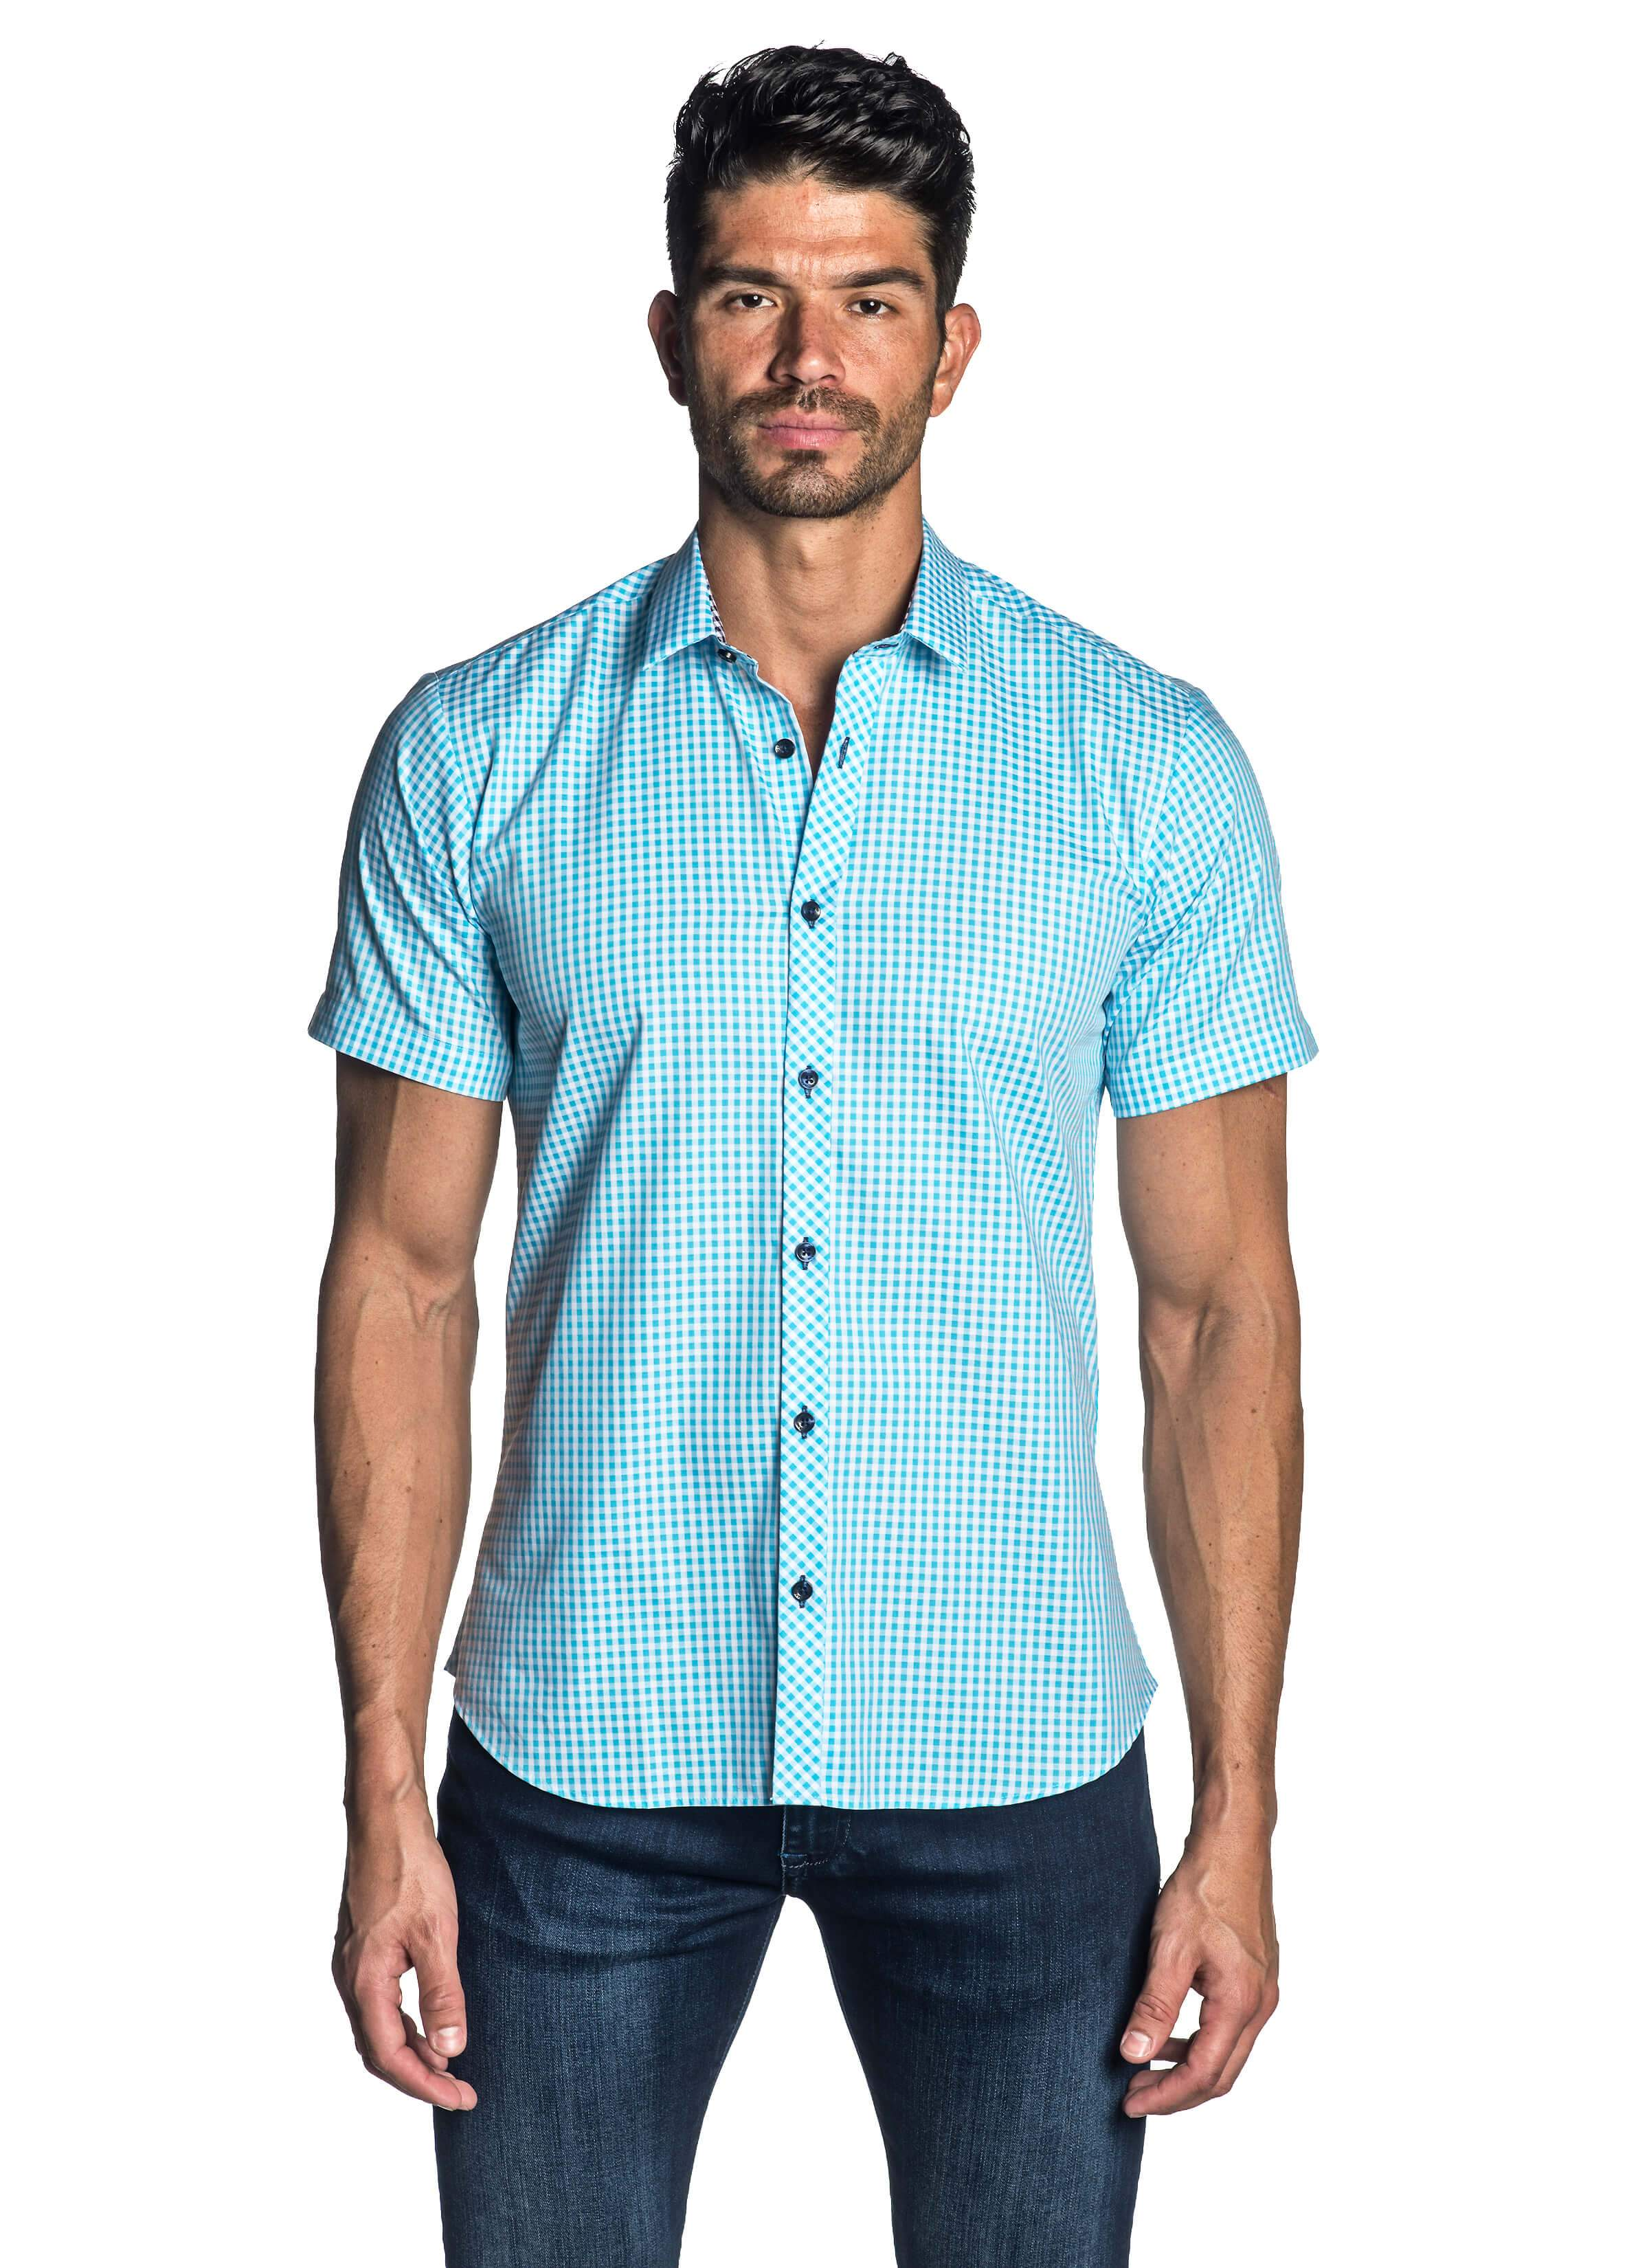 Turquoise Gingham Short Sleeve Shirt for Men - front AH-OT-7136-SS - Jared Lang